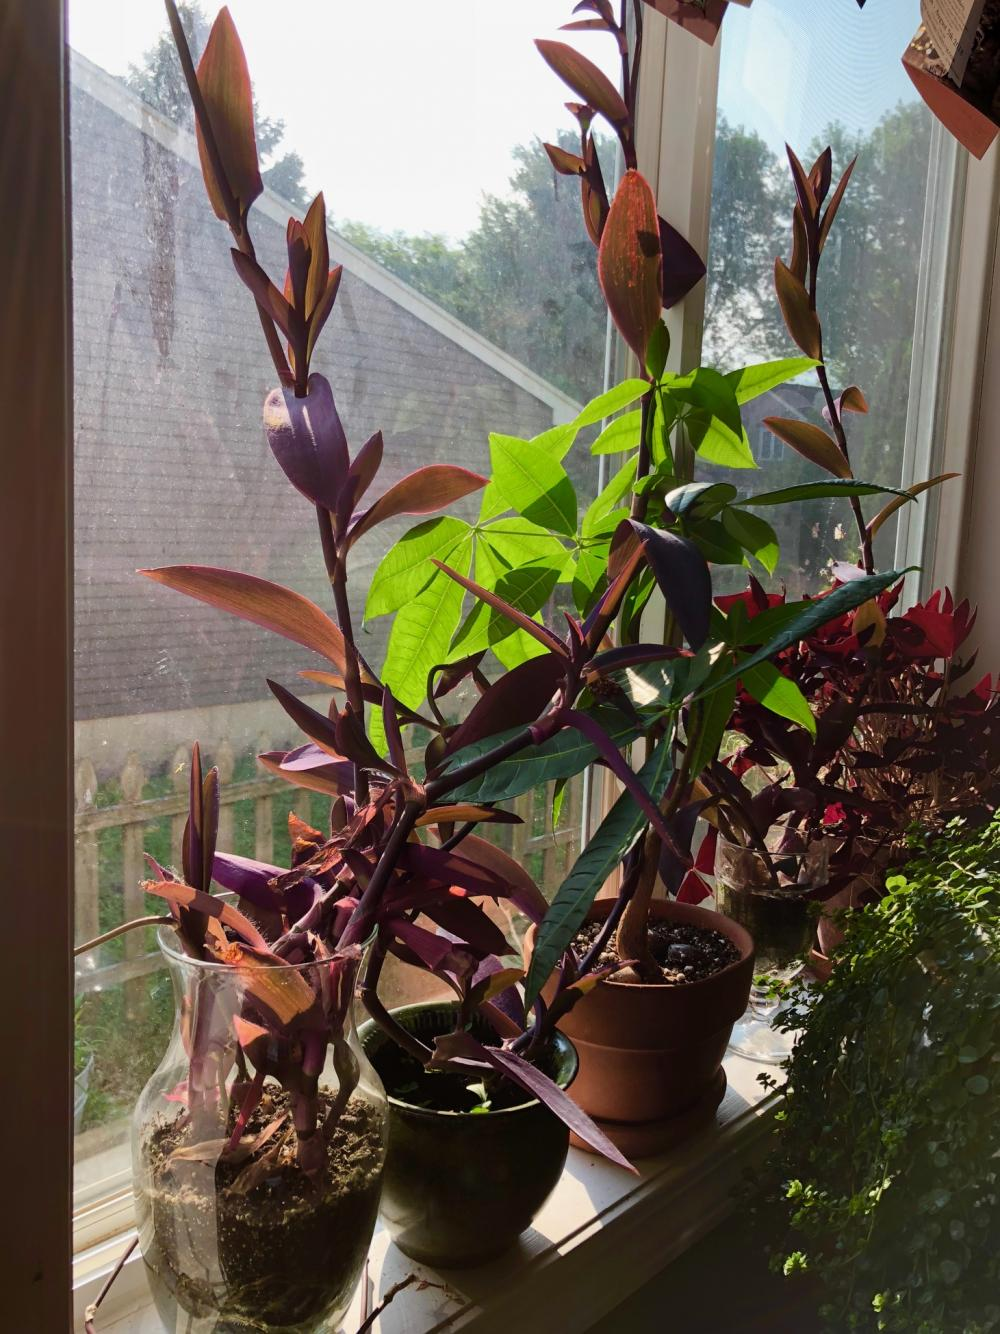 Morning potted plants